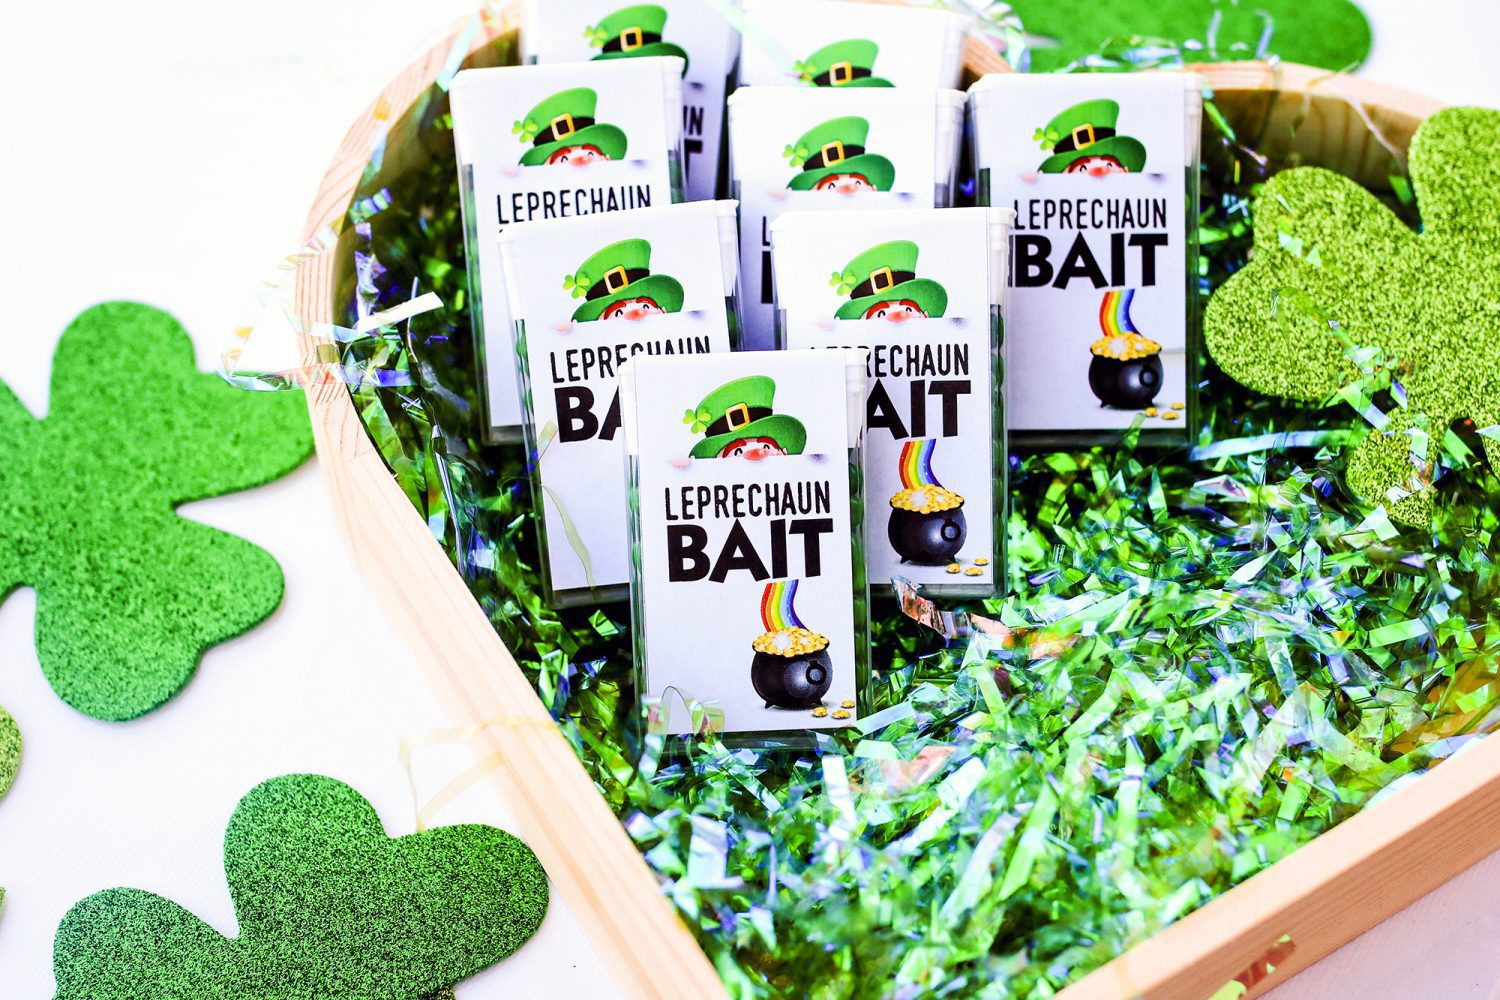 leprechaun bait, leprechaun poop, crafts, craft, crafts for st. patrick's day, st patty's day, kids, gift idea, diy, kids craft, crafts for kids, 2019, candy, ideas for st patrick's day, gifts for kids